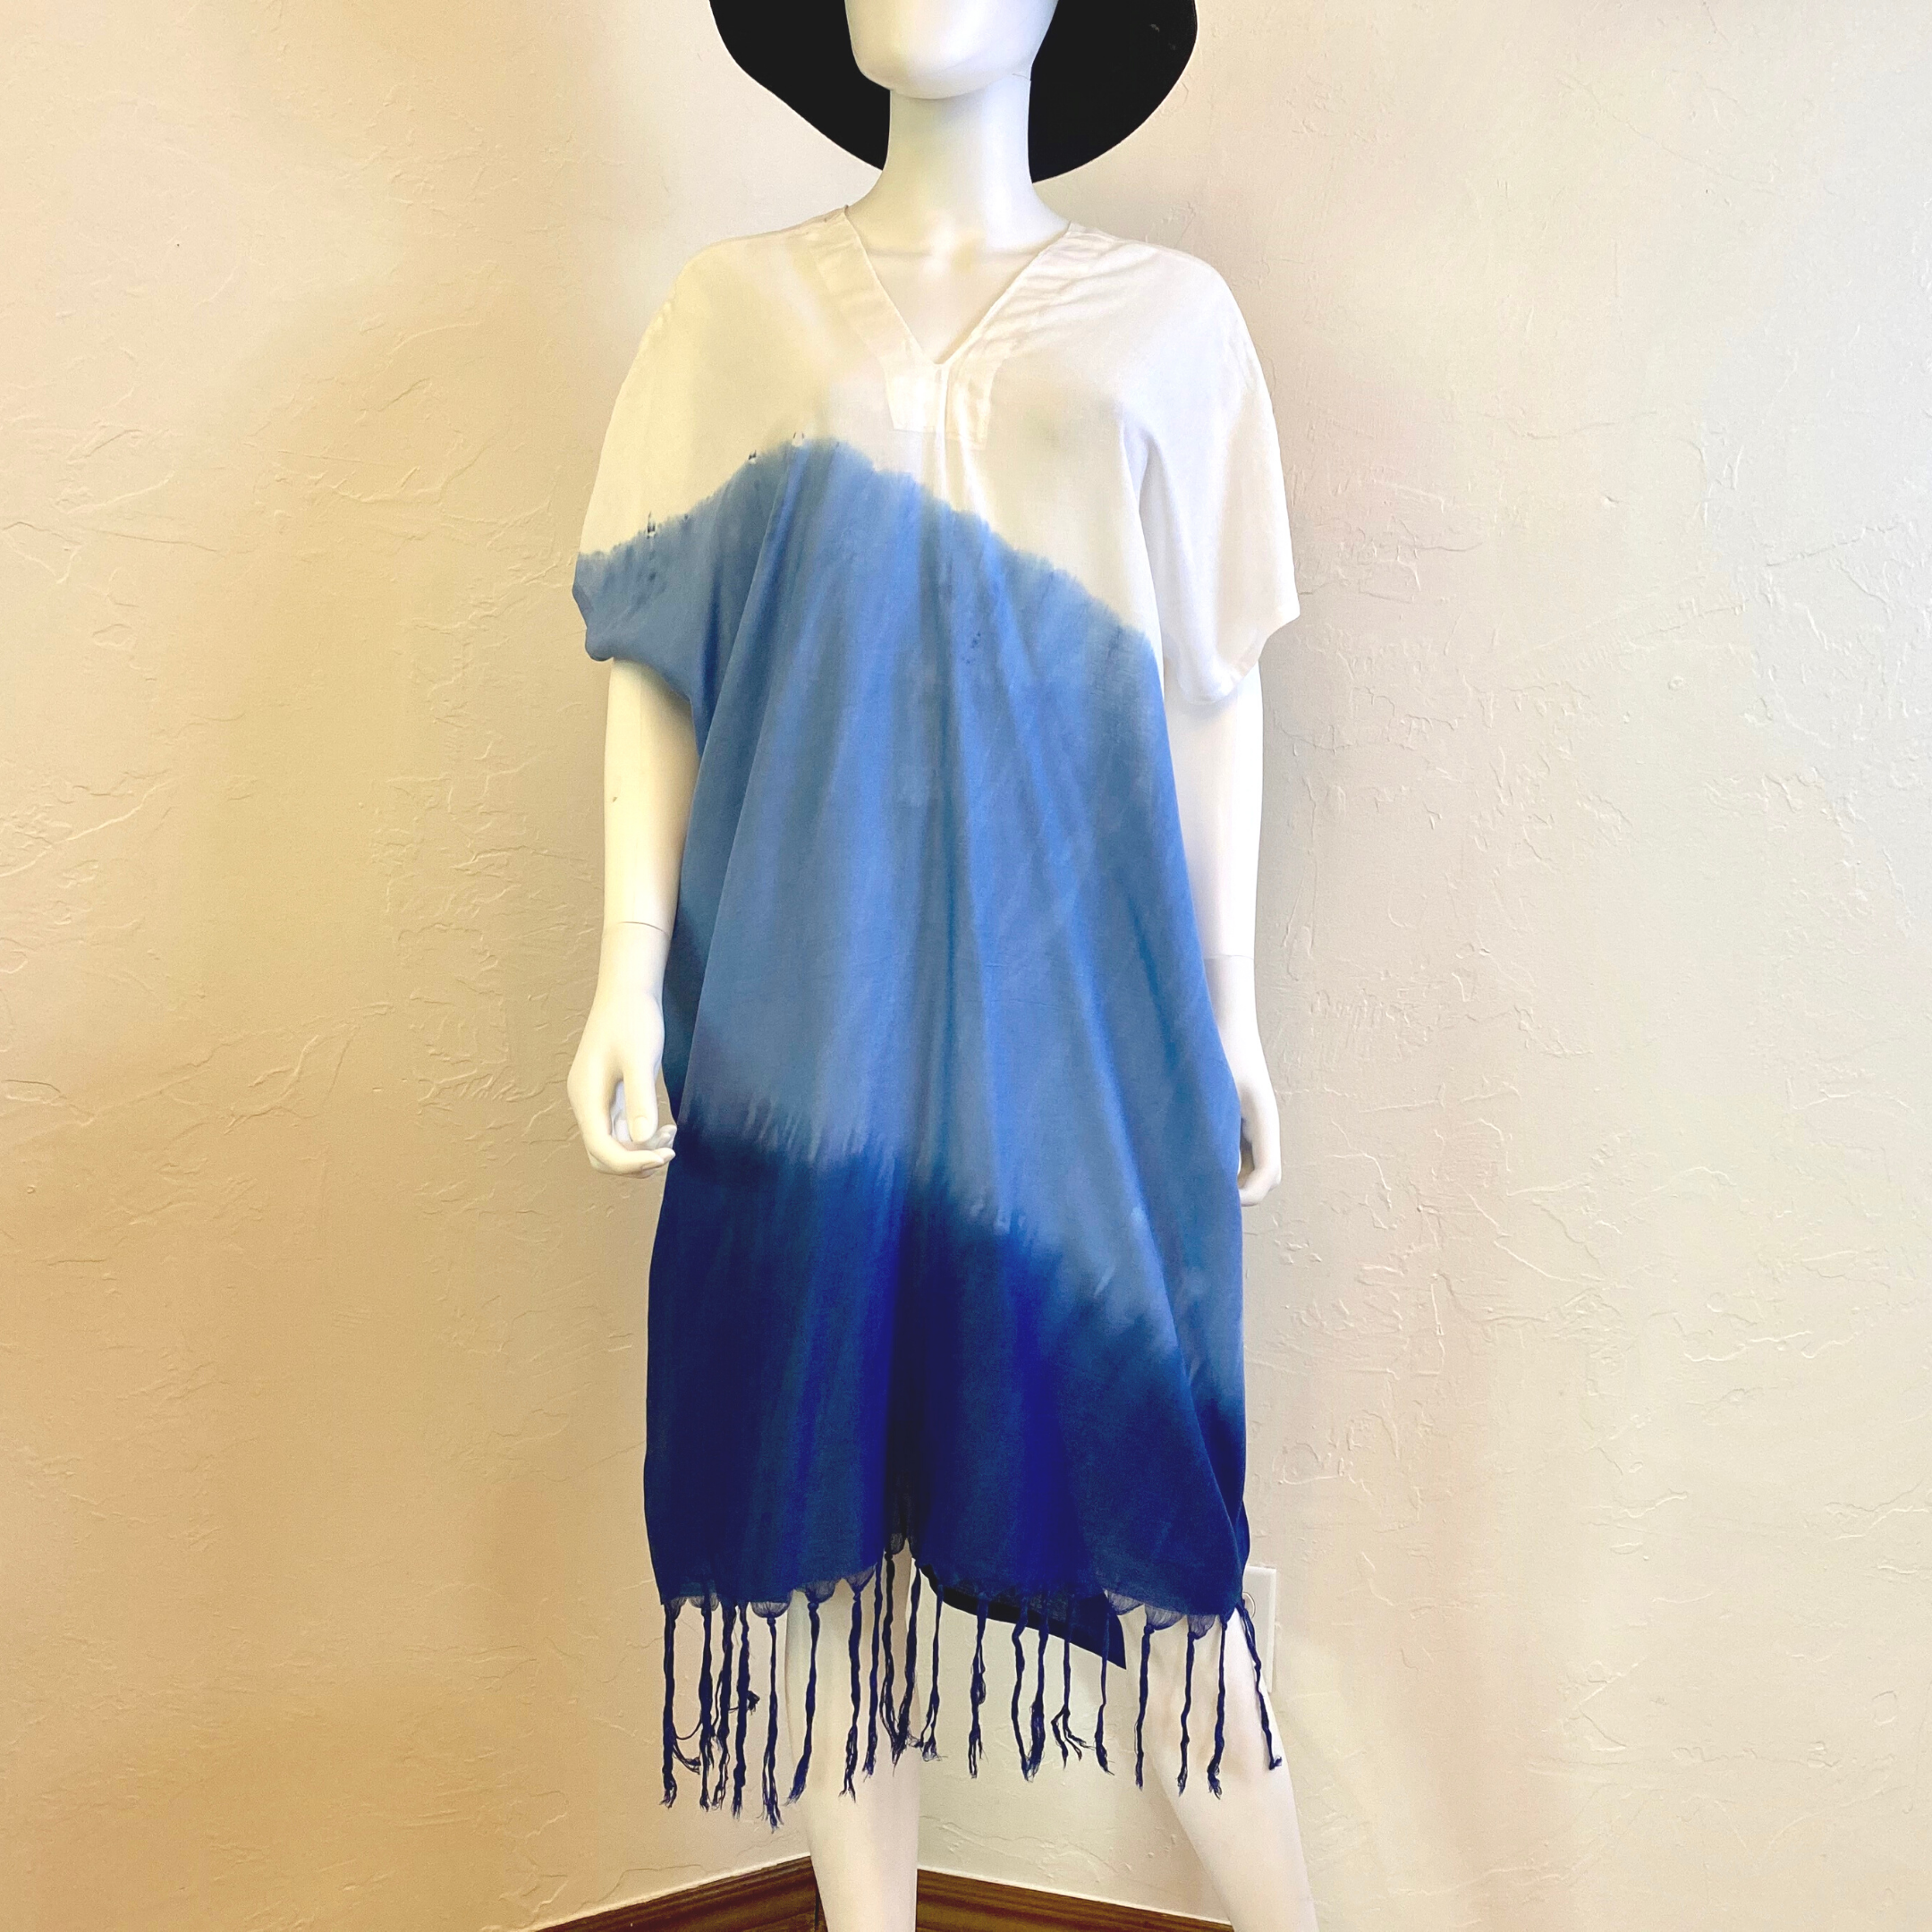 Plus Size Short Sleeve Loose Tie Dye Dress